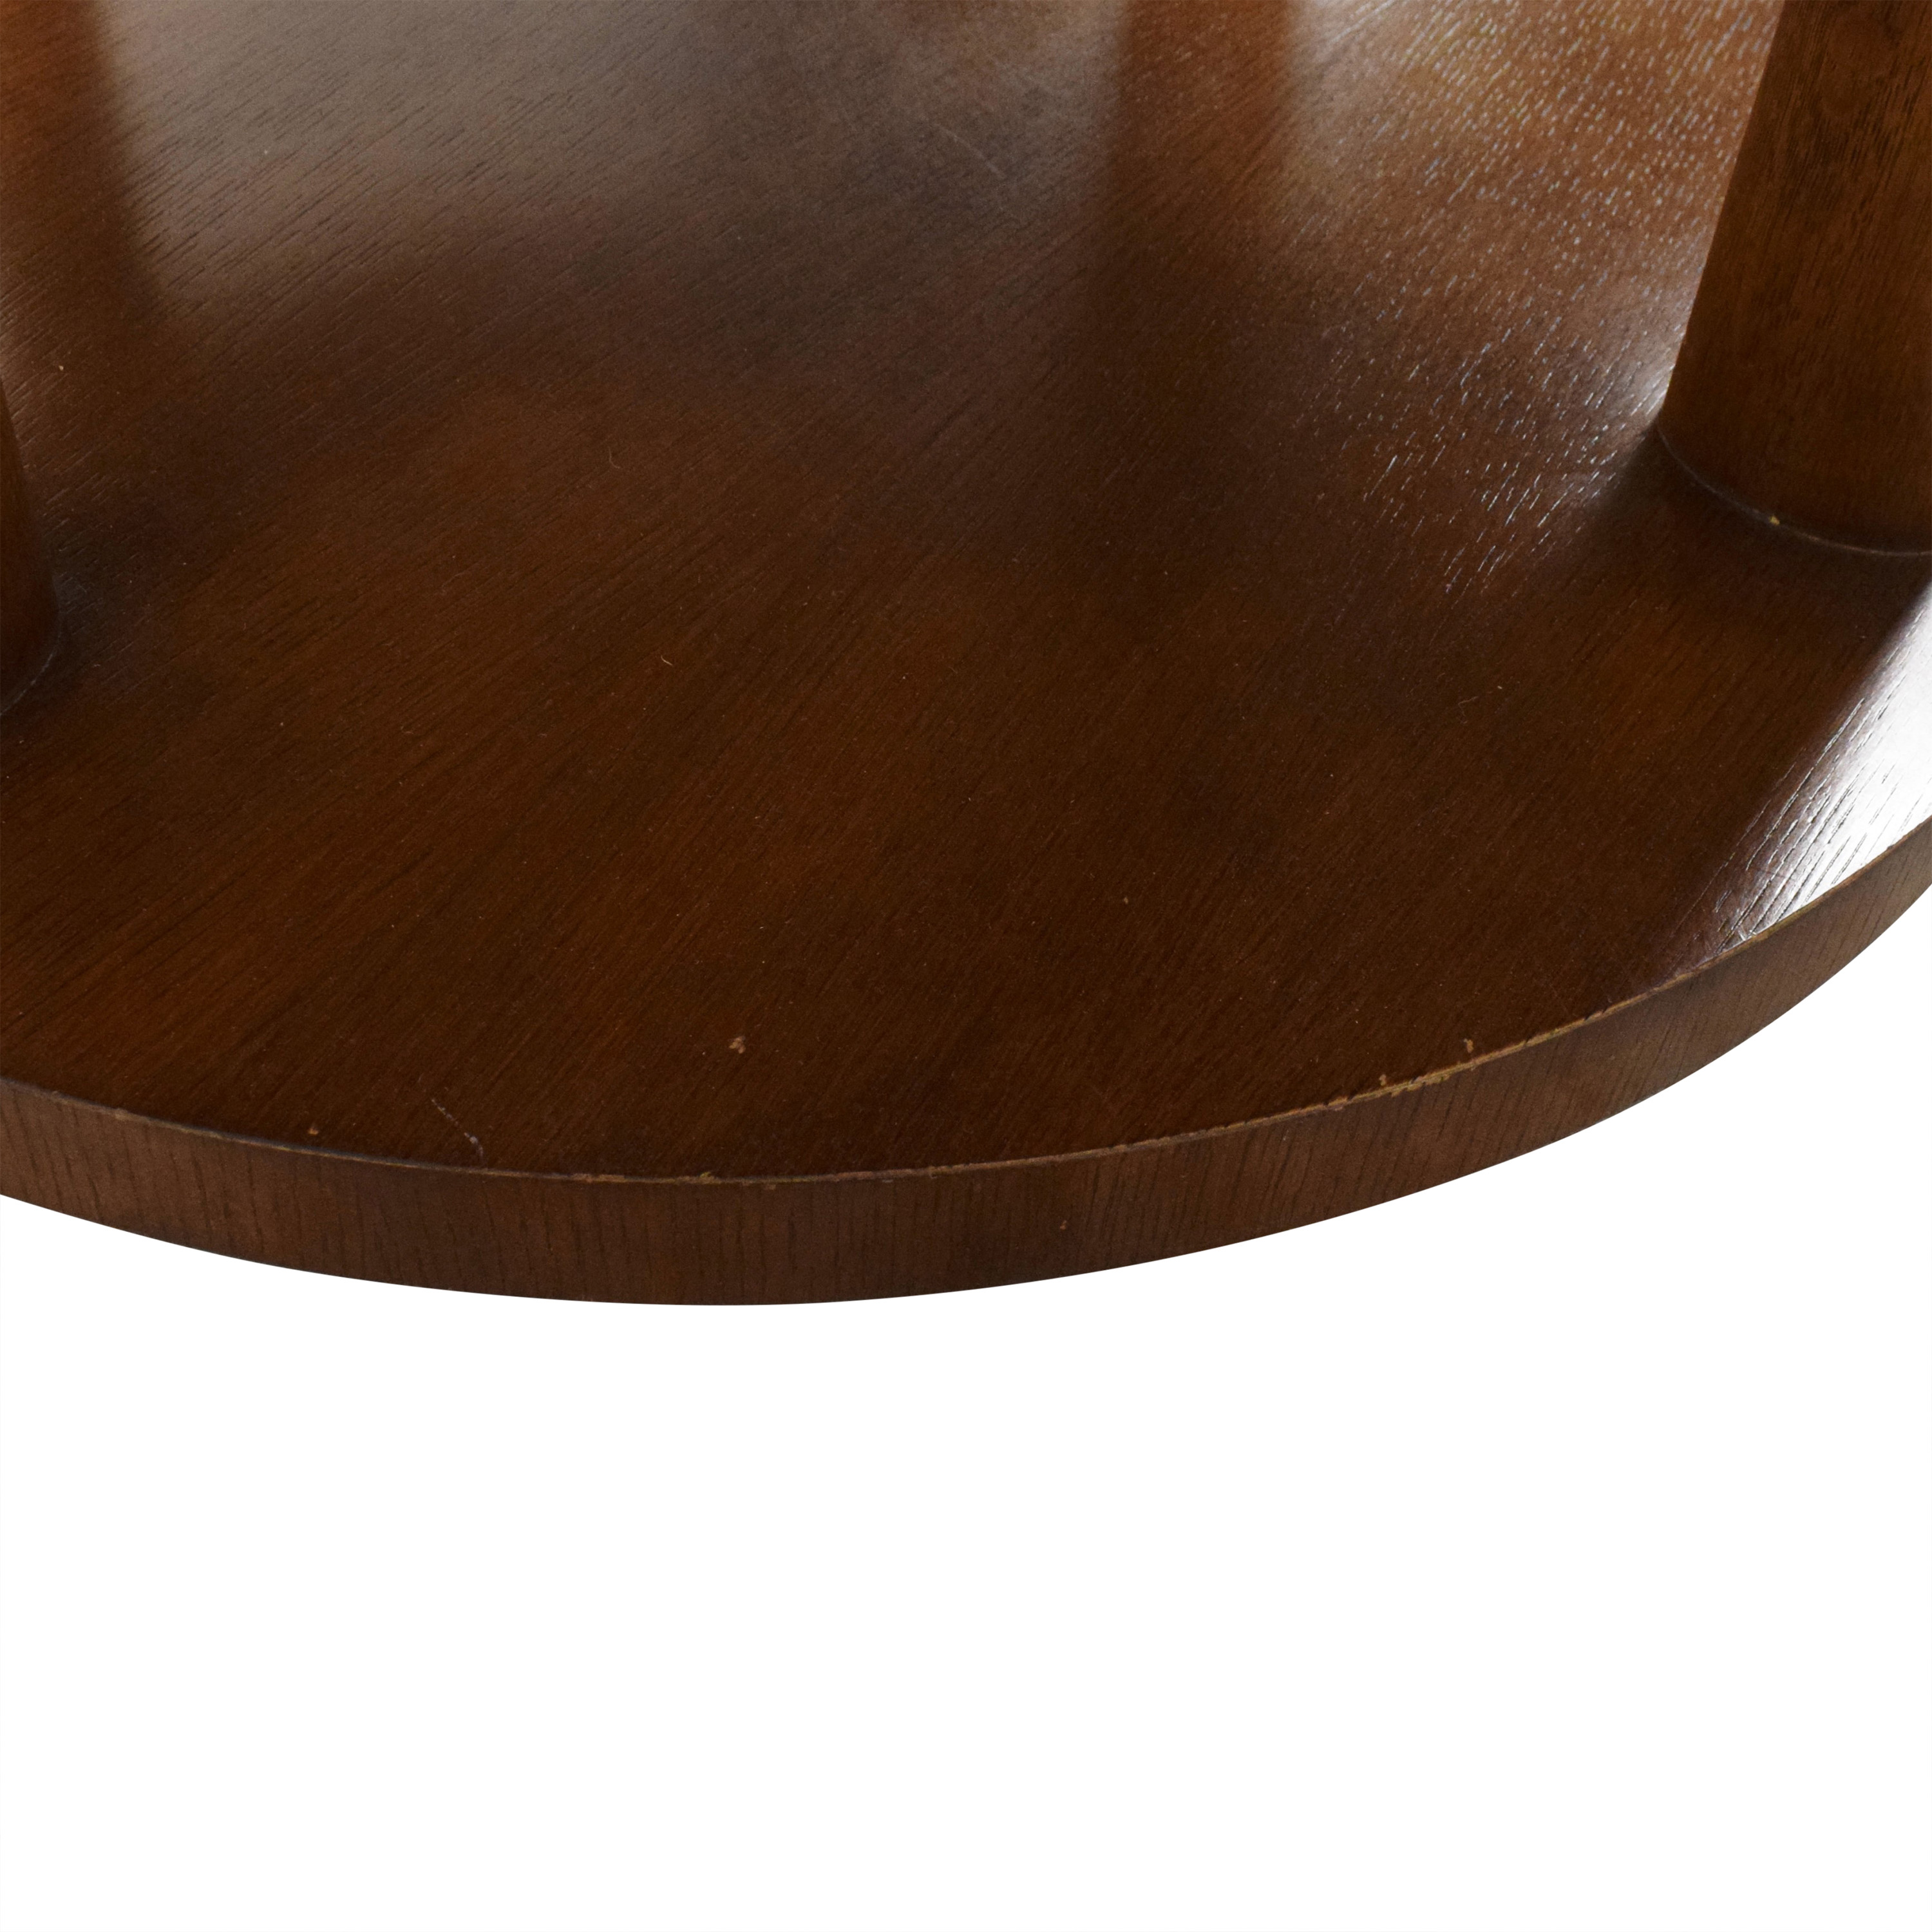 Baker Furniture Baker Furniture Barbara Barry Round Tiered Occasional Table second hand